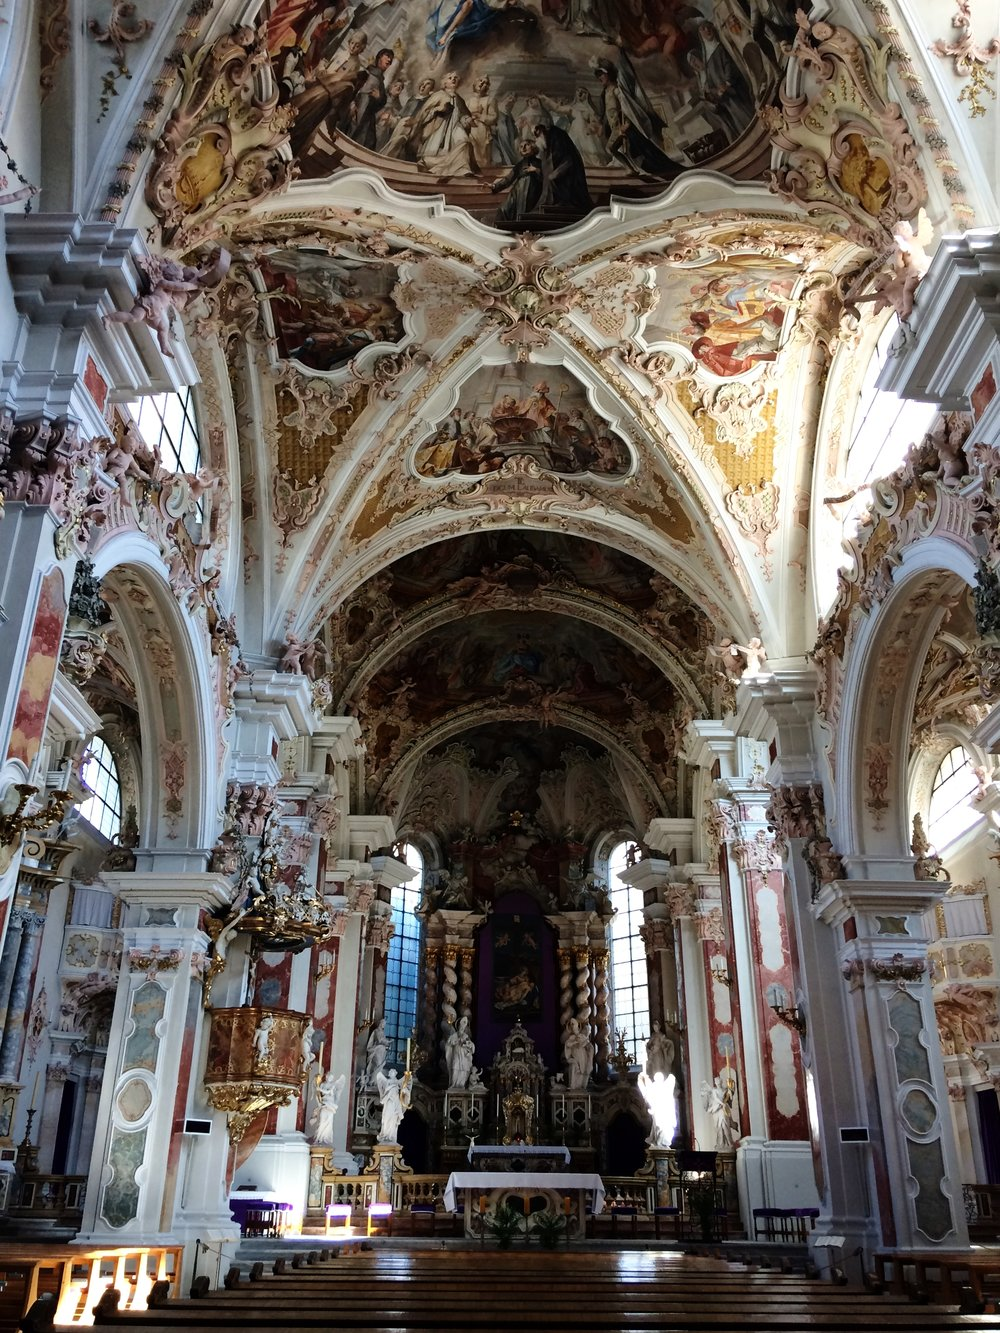 The view inside the Stiftskirche in the Neustift Monastery in South Tyrol, where we'll be getting married this summer (and which I only saw for the first time last week - isn't it stunning?)